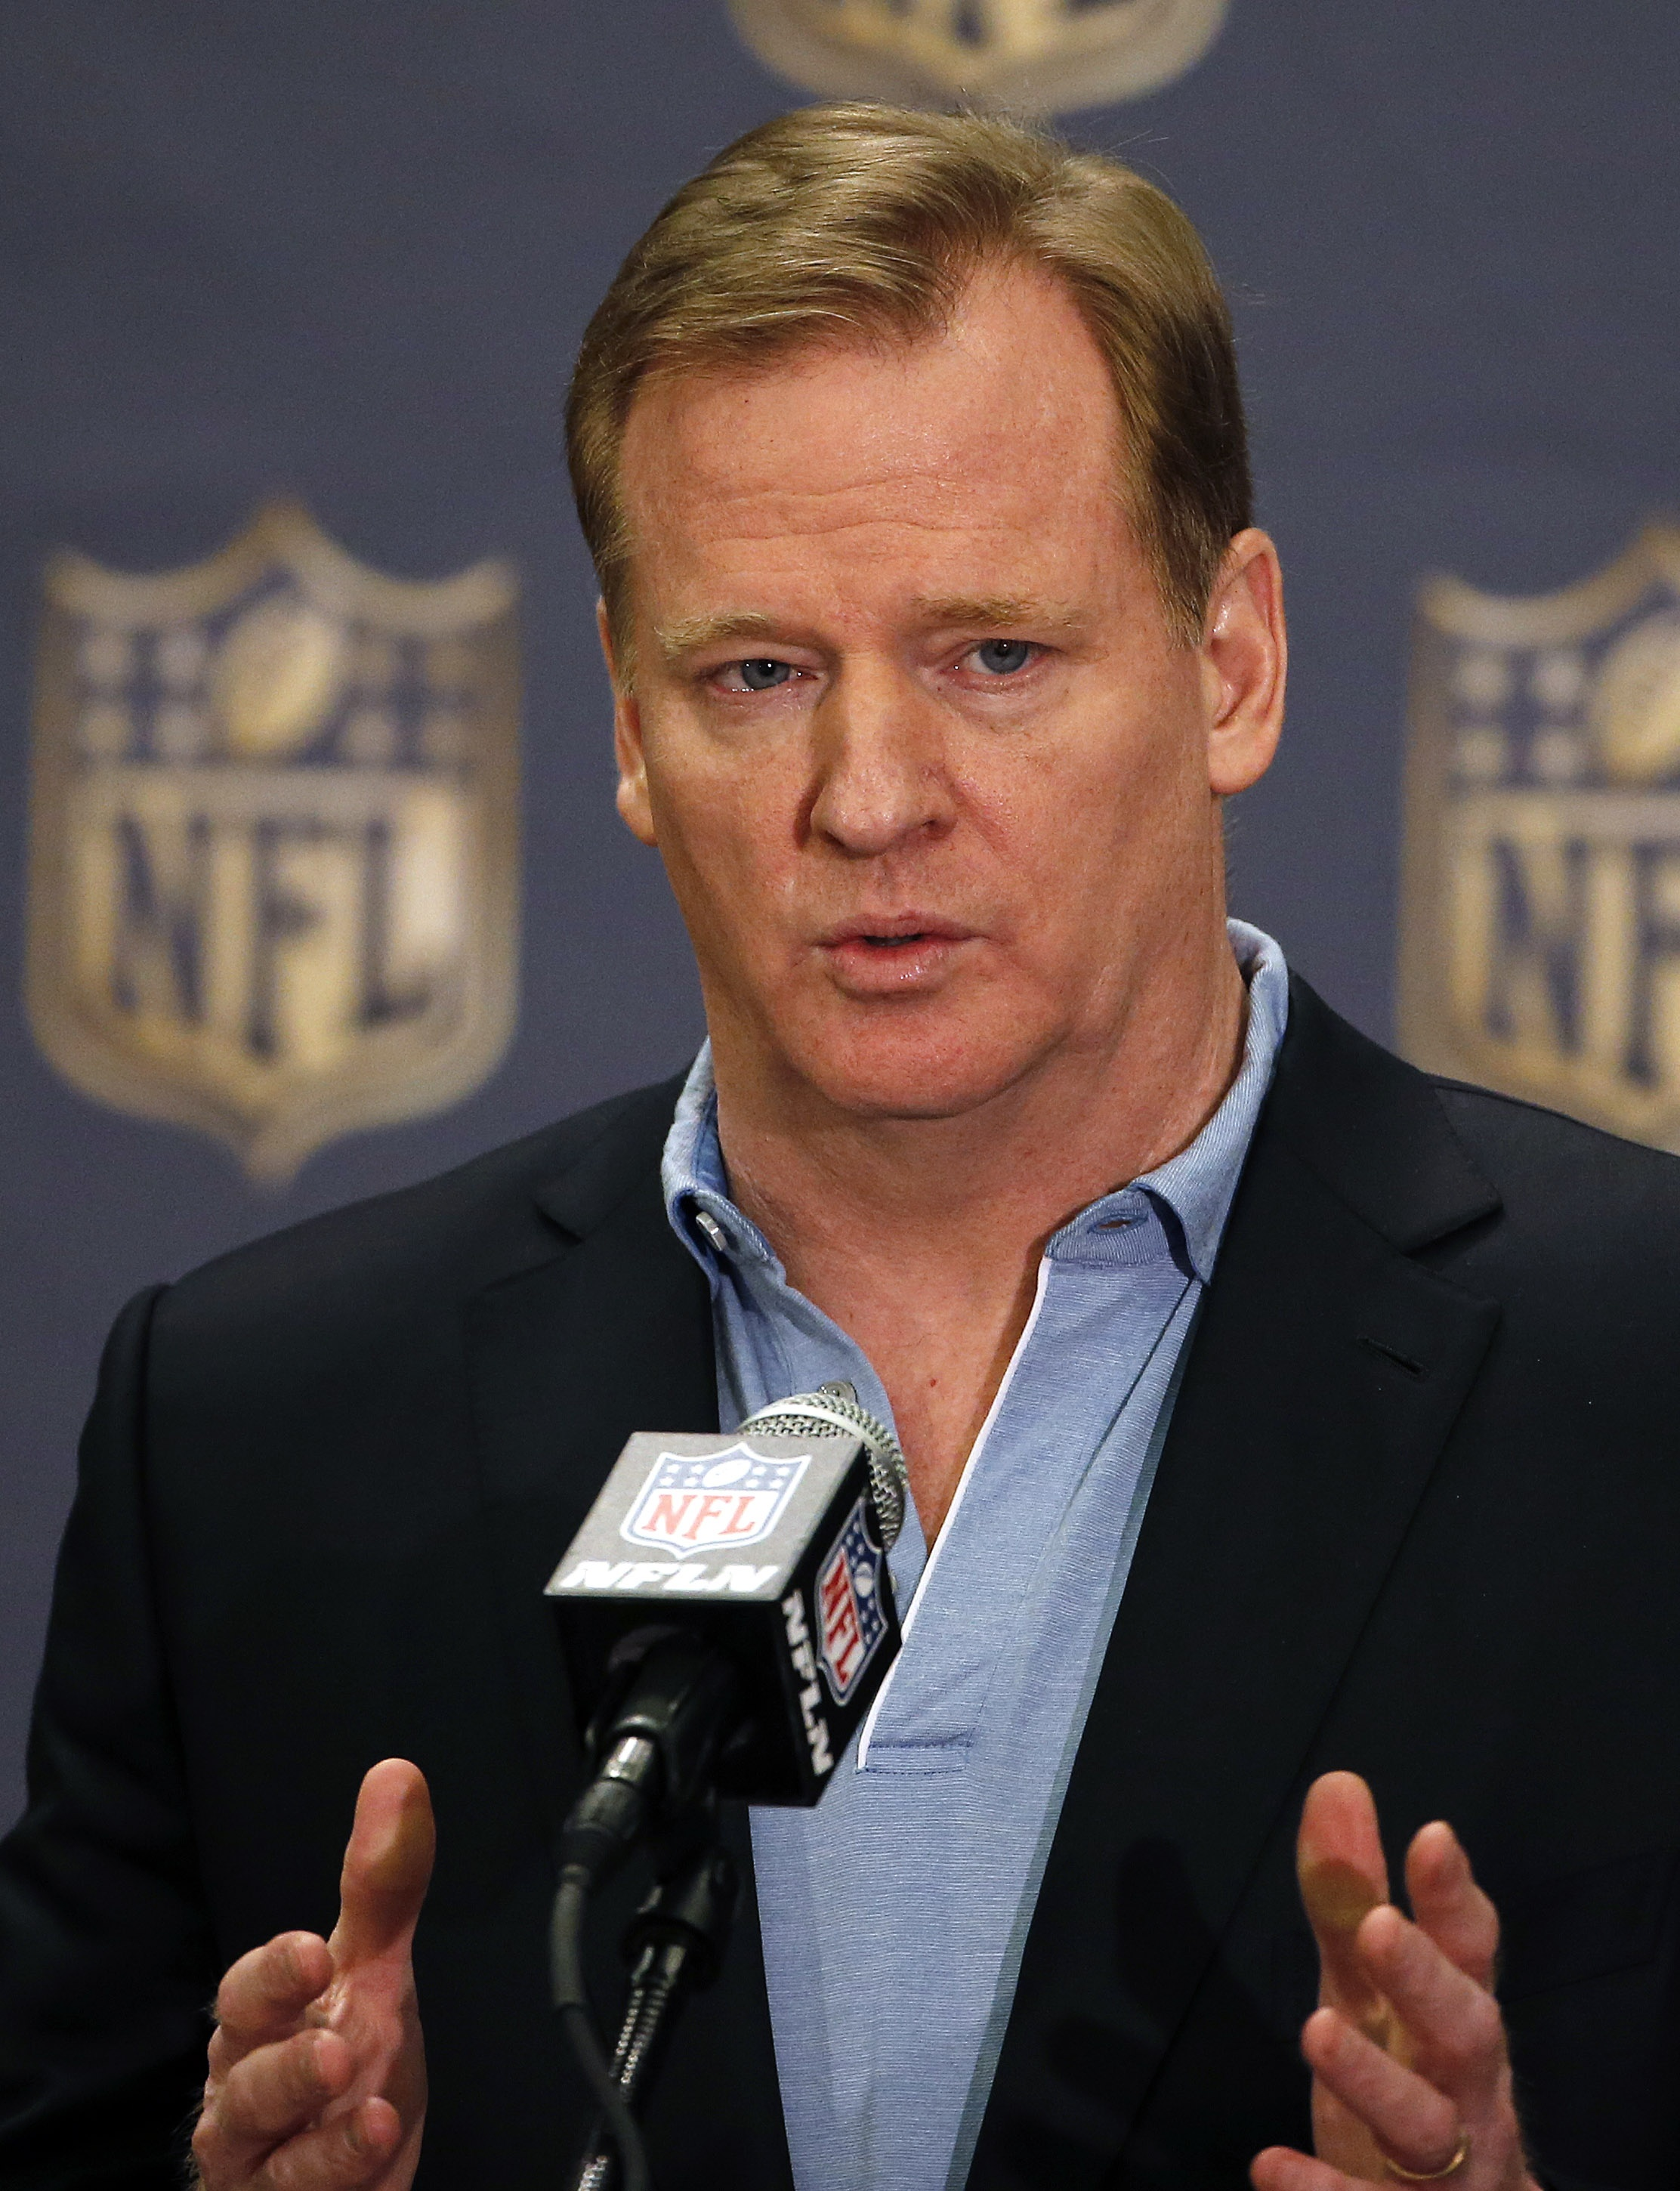 NFL Commissioner Roger Goodell answers a question at a news conference during the NFL Annual Meeting Wednesday, March 25, 2015, in Phoenix. (AP Photo/Ross D. Franklin)